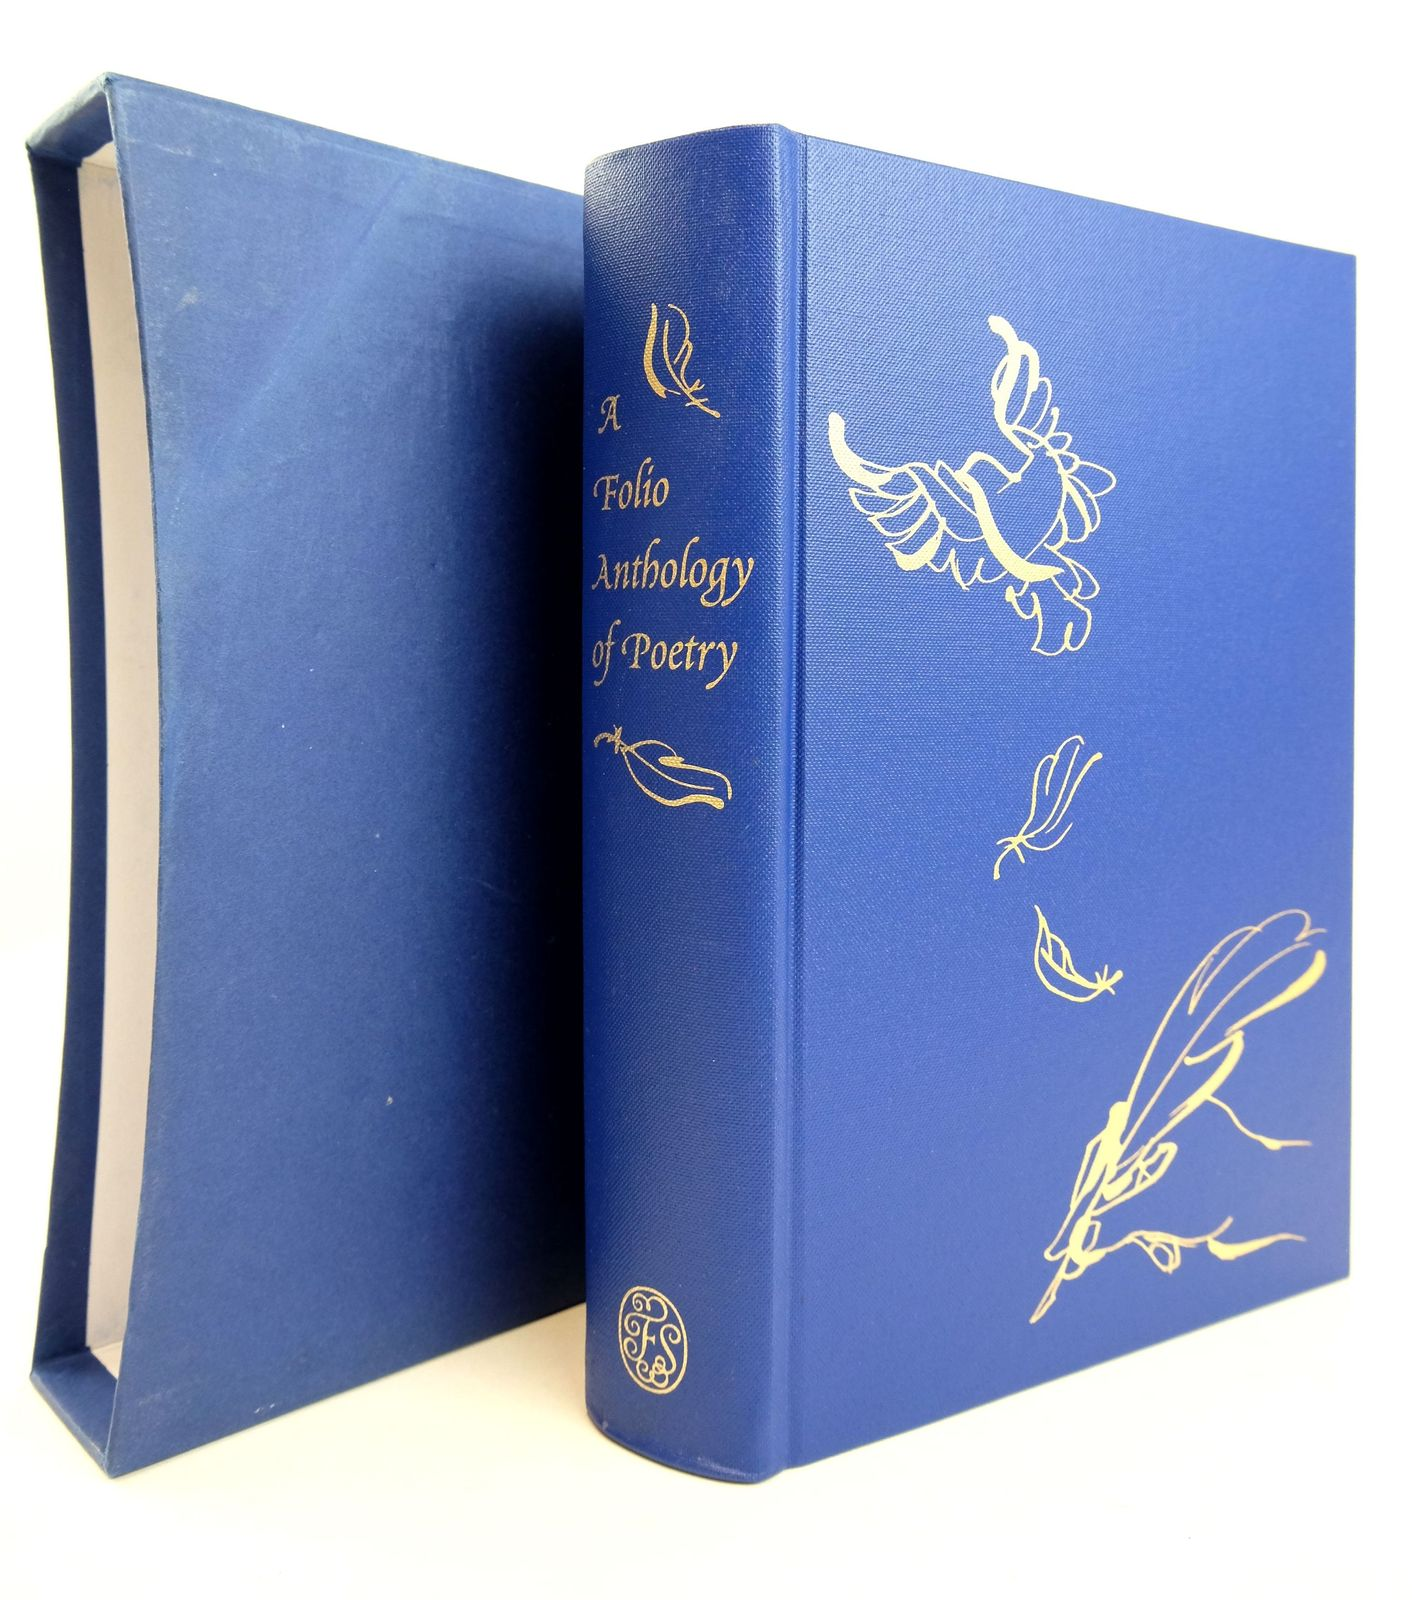 Photo of A FOLIO ANTHOLOGY OF POETRY written by Duffy, Carol Ann illustrated by Griffin, Eri published by Folio Society (STOCK CODE: 1818916)  for sale by Stella & Rose's Books